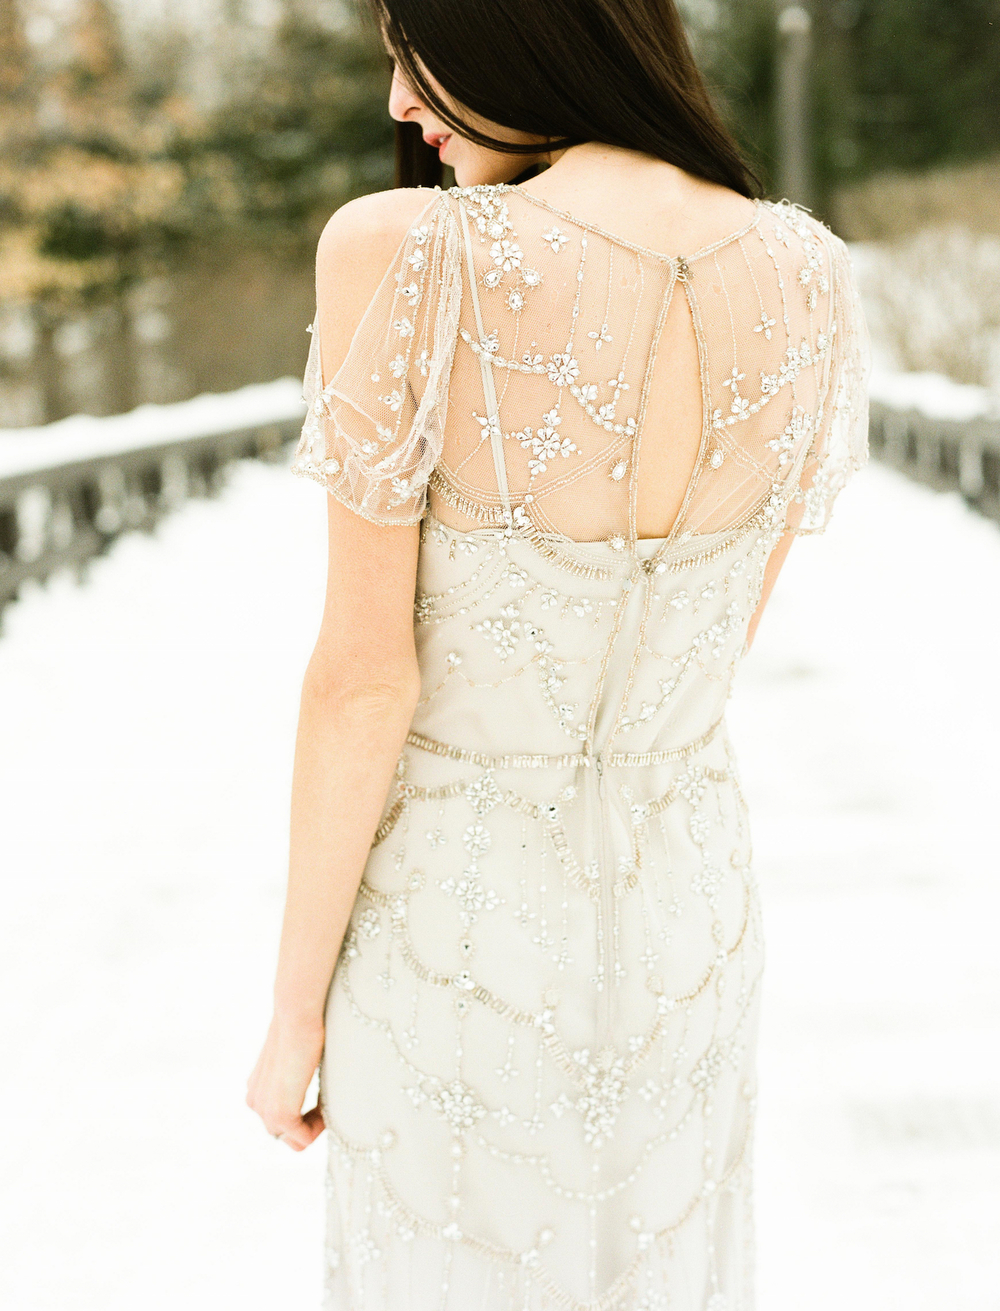 Winter Editorial-JennyPackham-LindsayMaddenPhotography-32 copy.jpg